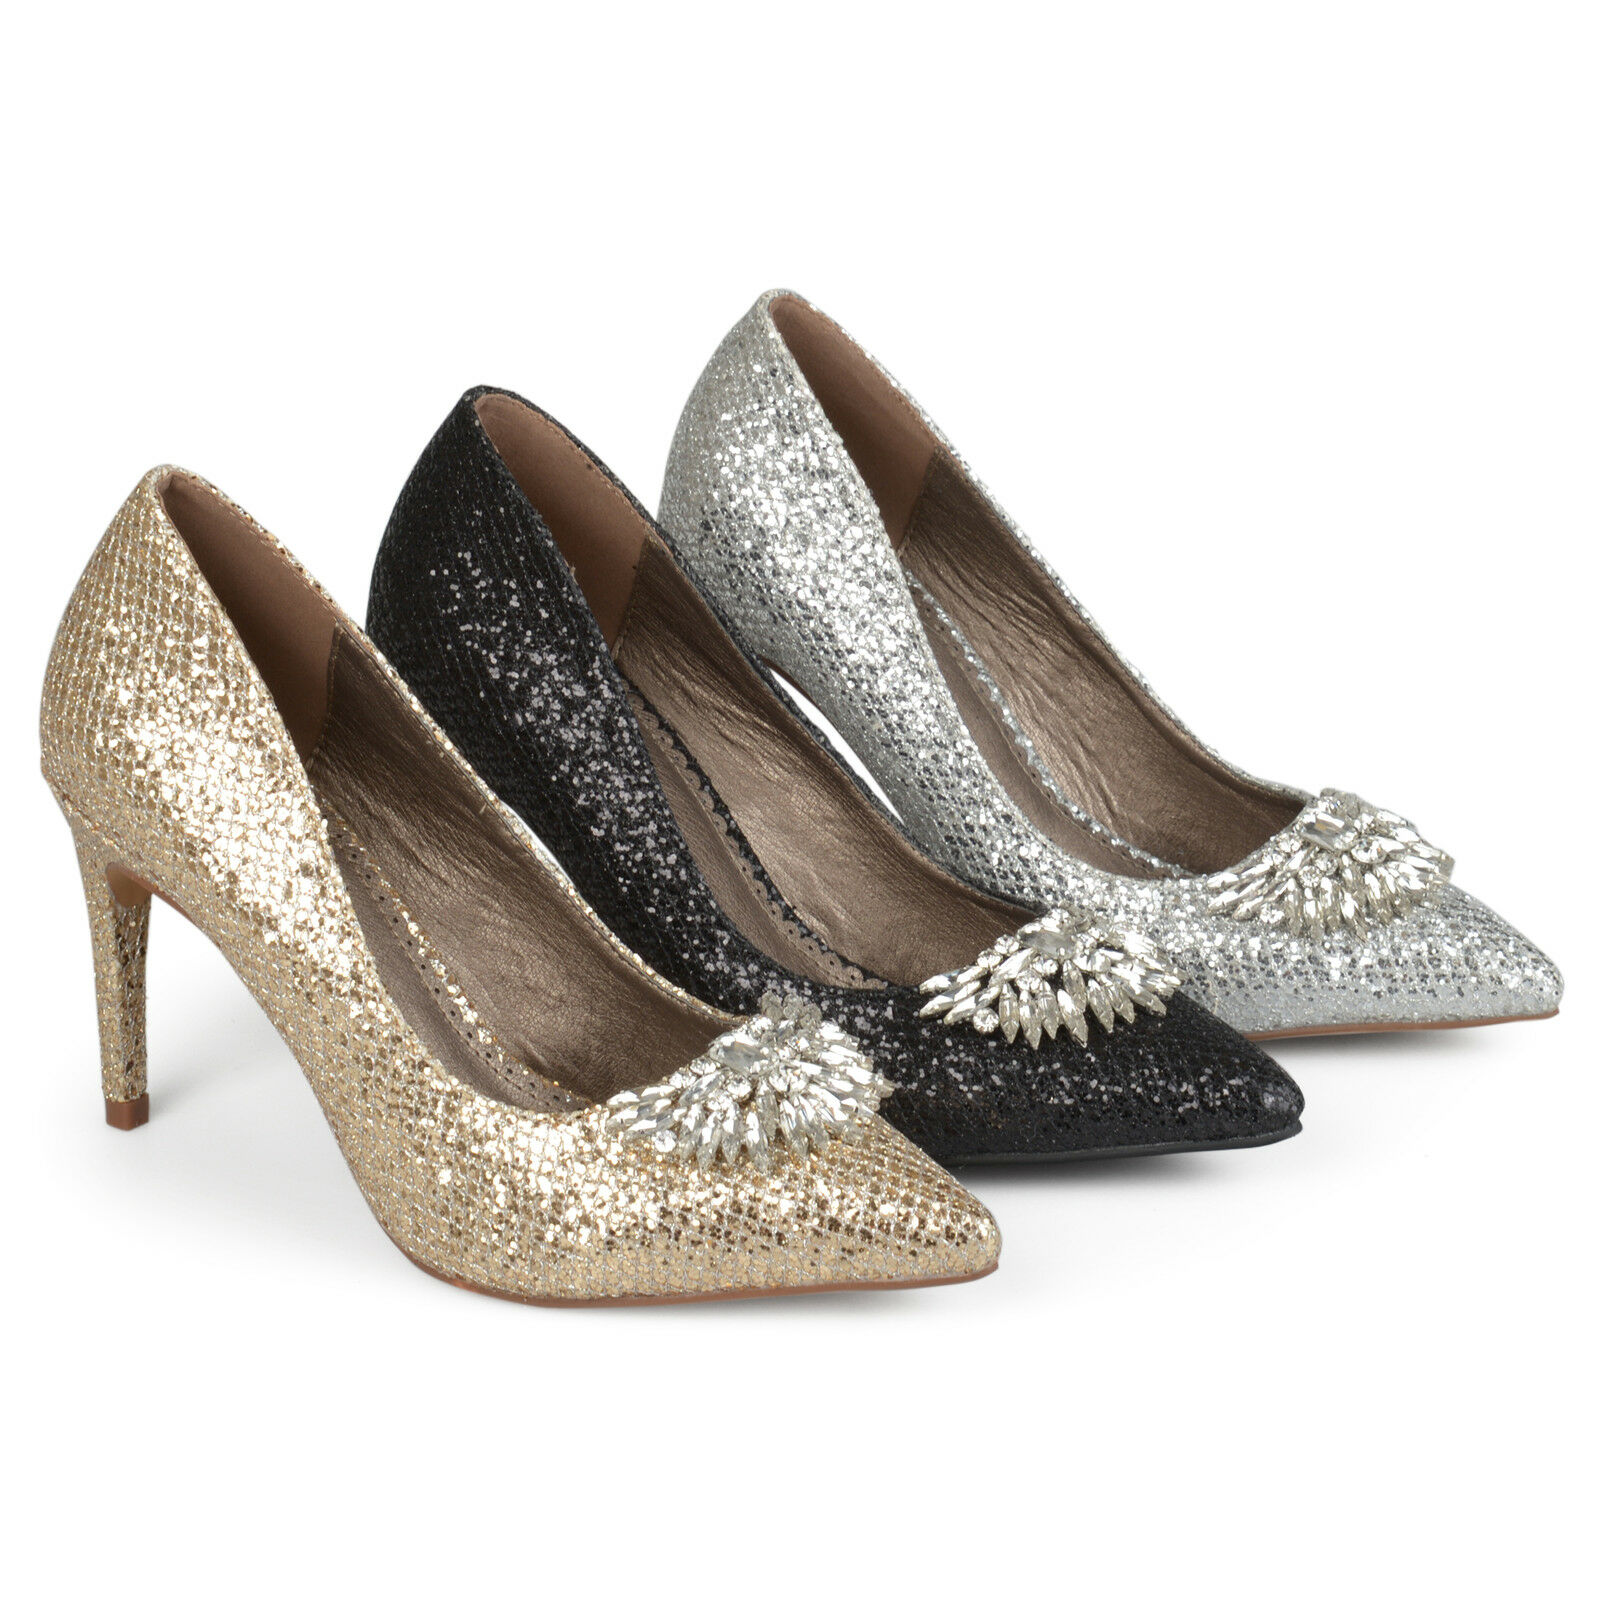 Brinley Co Womens Faux Leather Jewel Pointed Toe Glitter Heels New New Heels e7074a